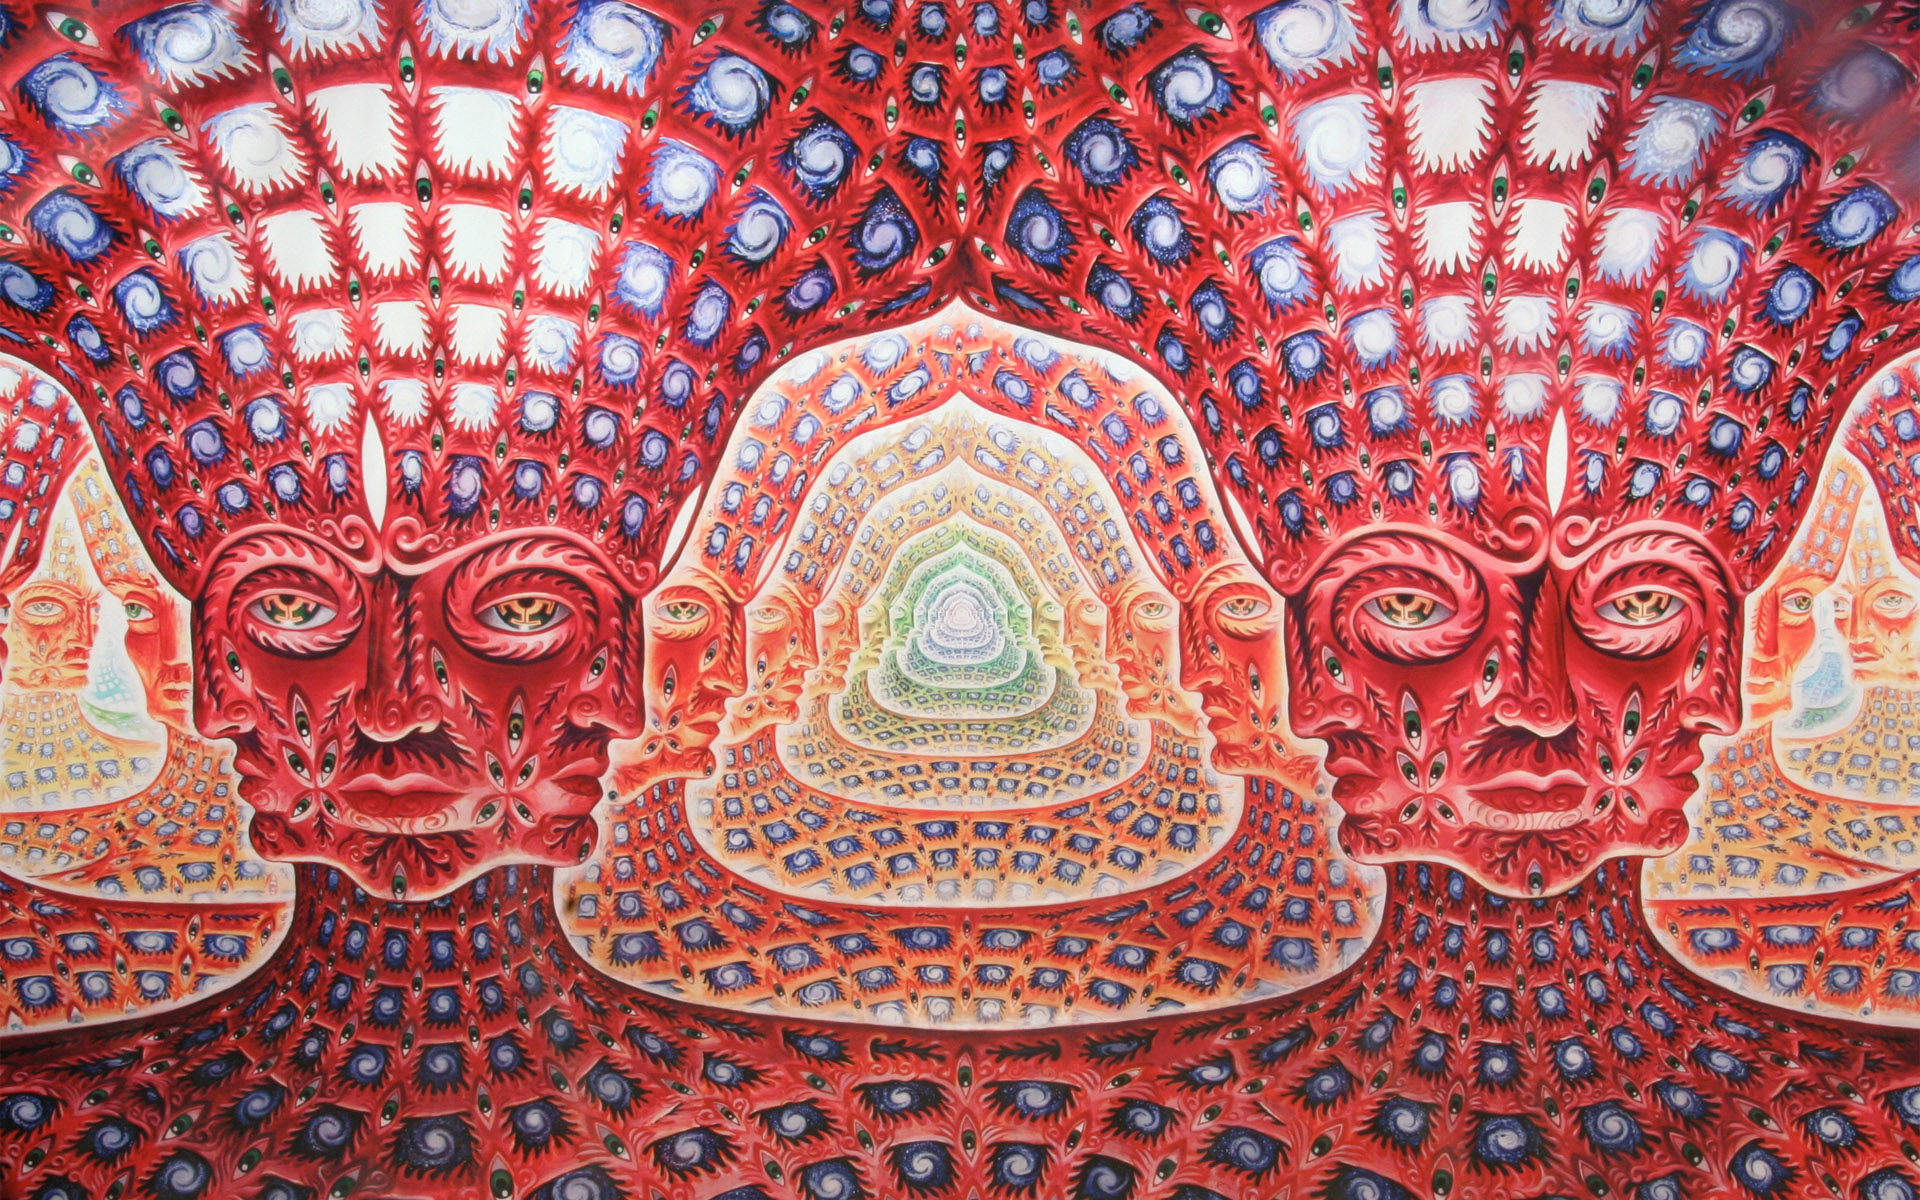 Abstract Music Tool Grey Psychedelic Music Bands Alex Grey 10000 Days Wallpaper 1920x1200 8298 Wallpaperup